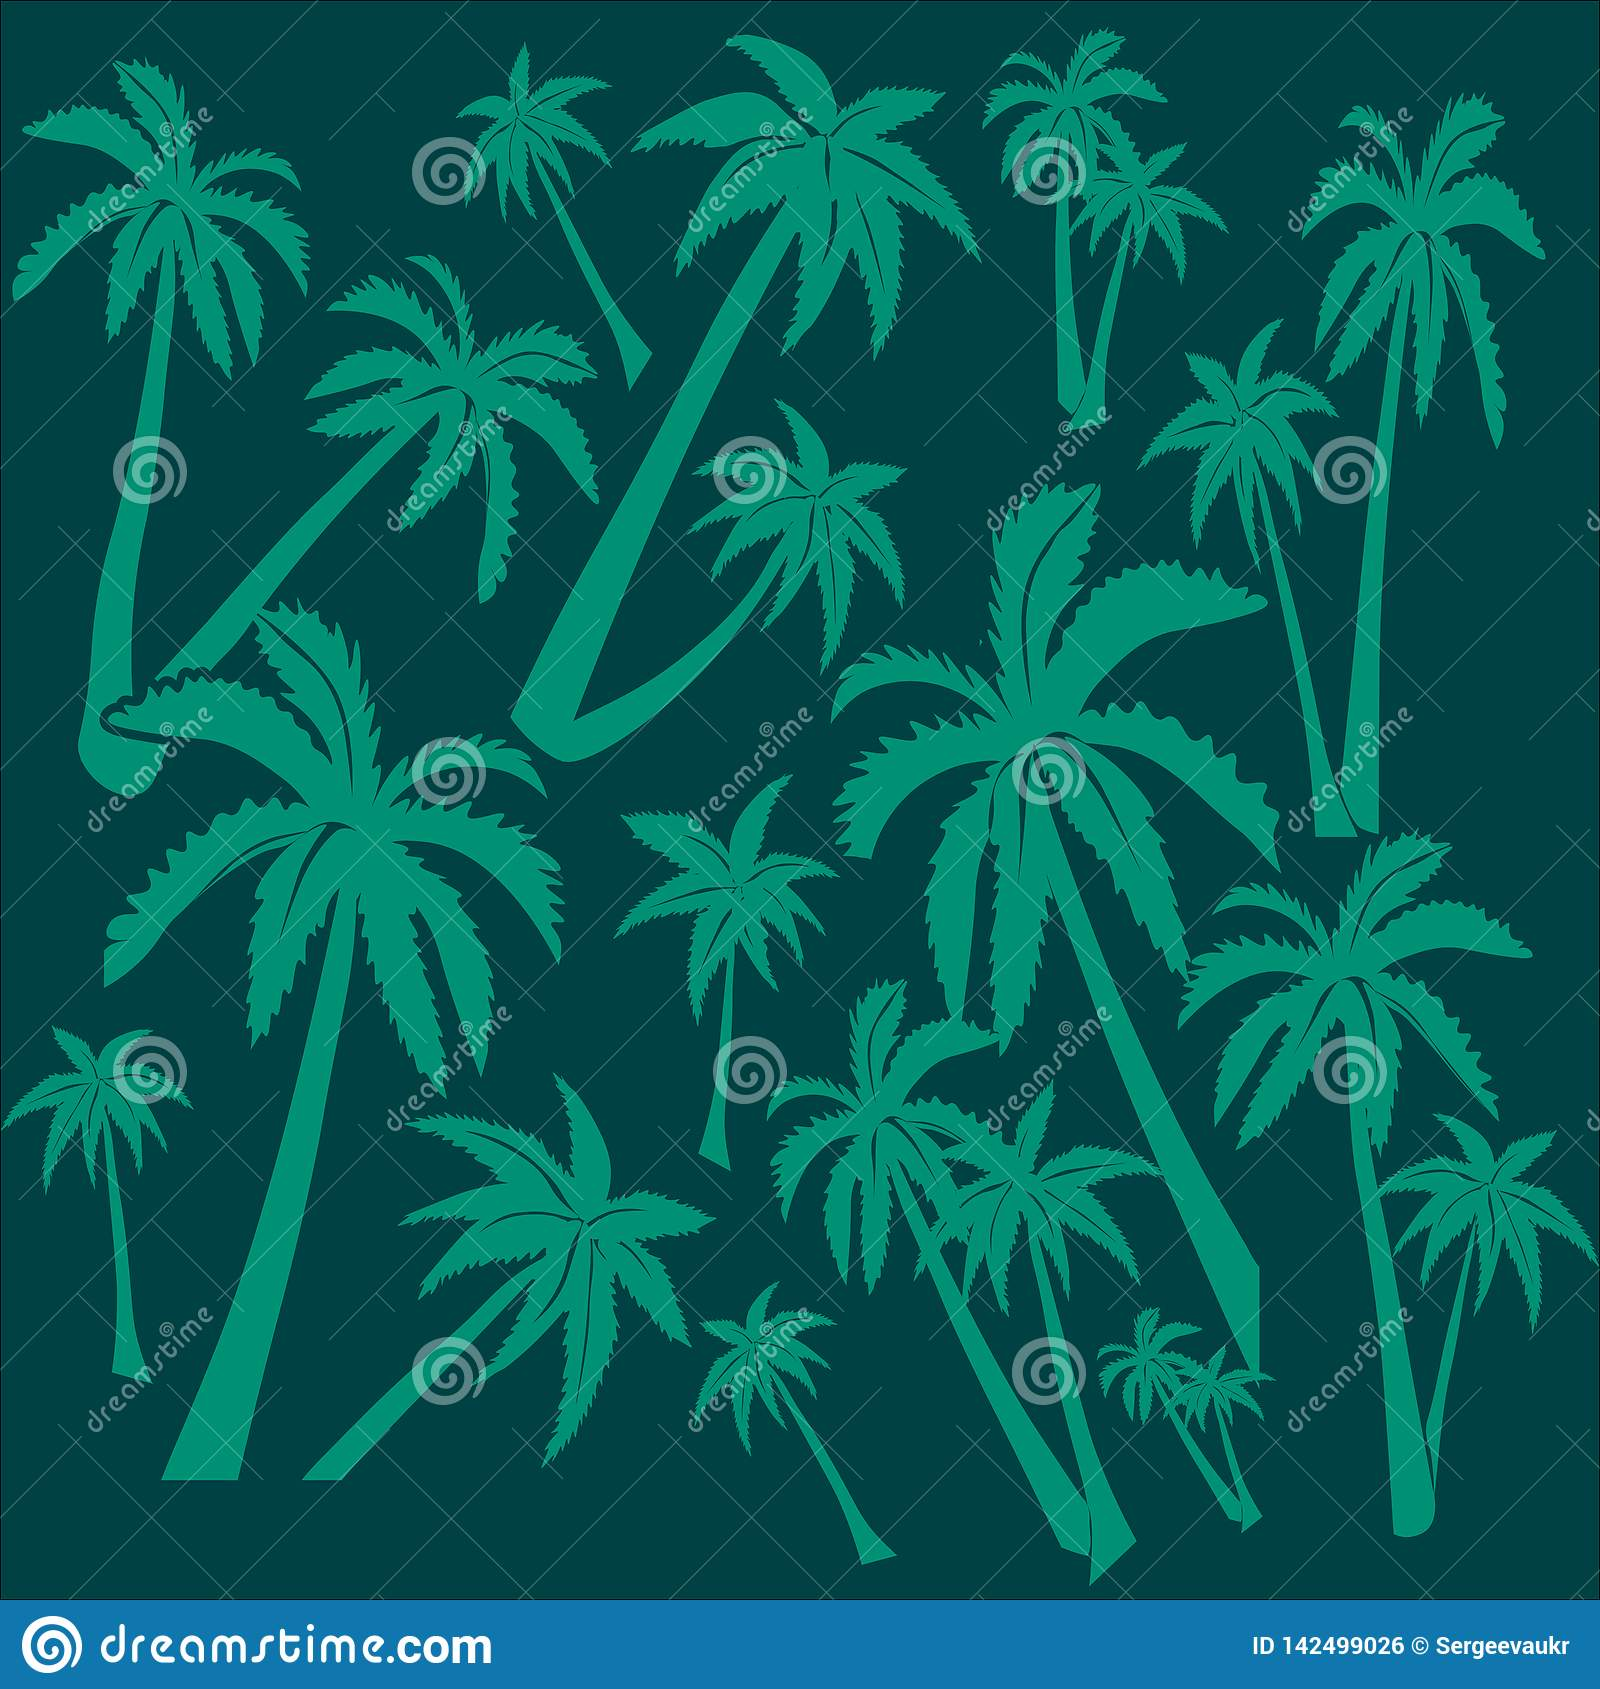 Background of palm trees